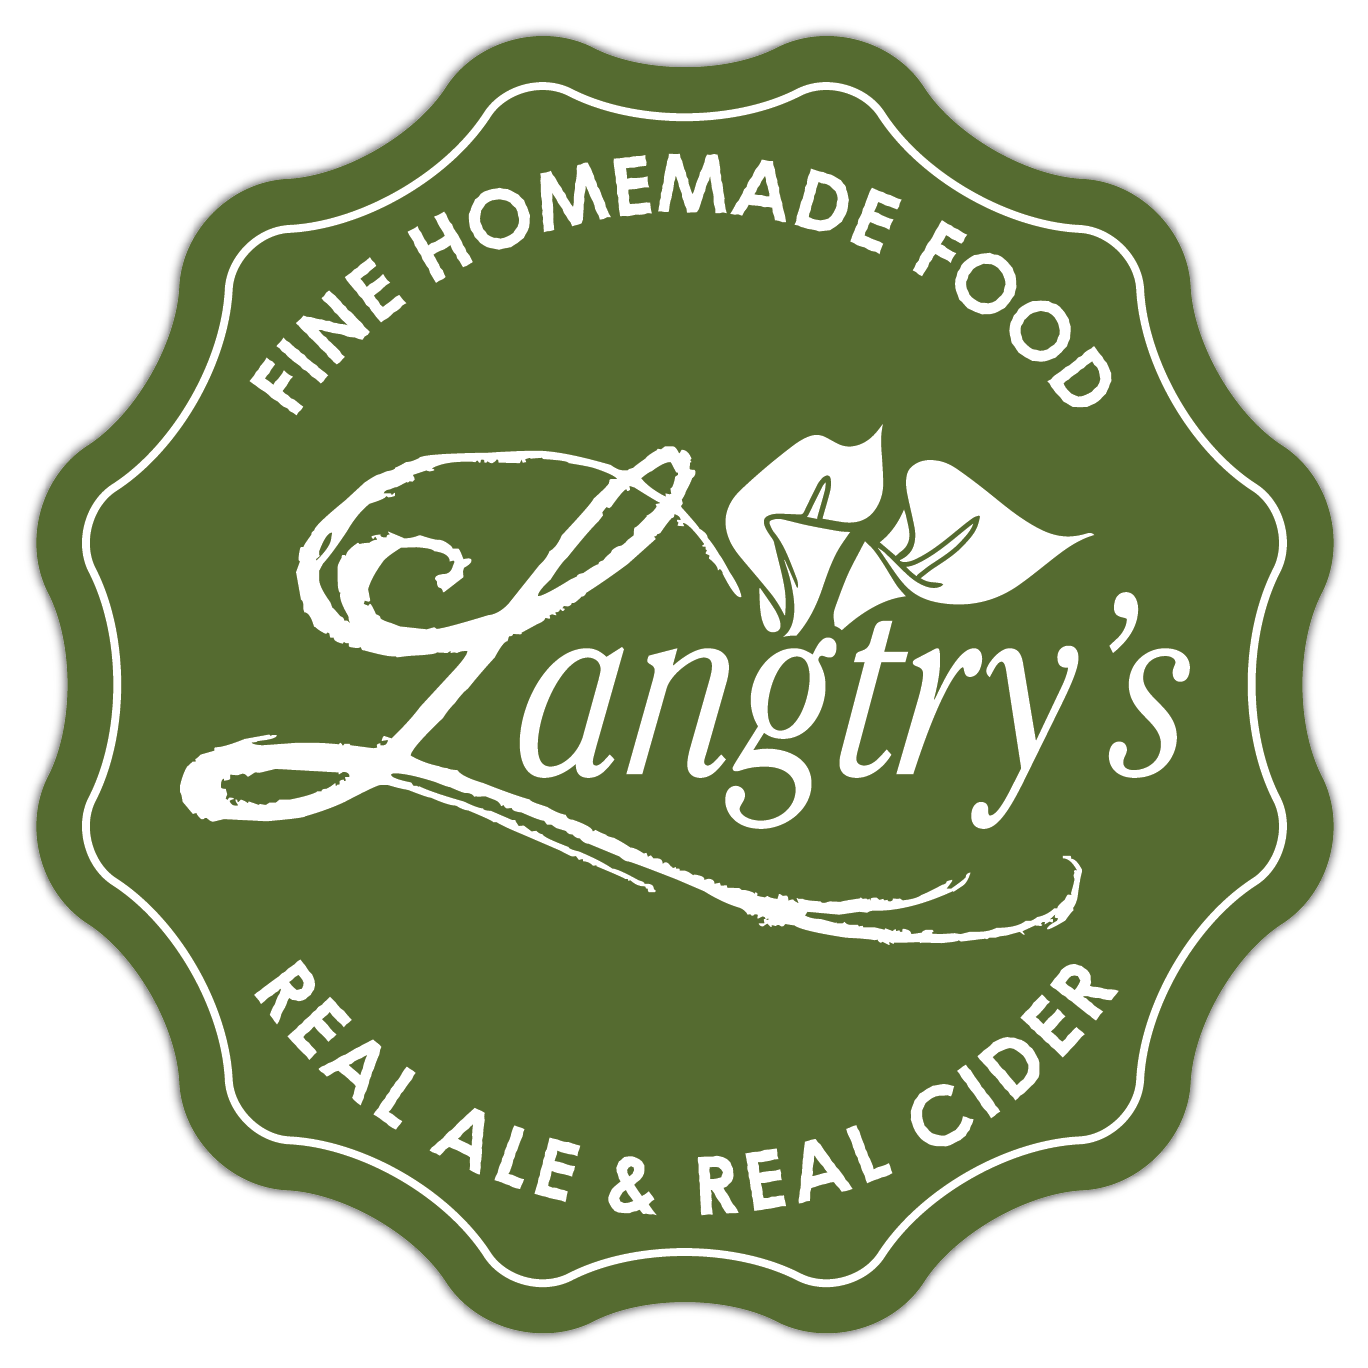 Langtry's Pub Nottingham